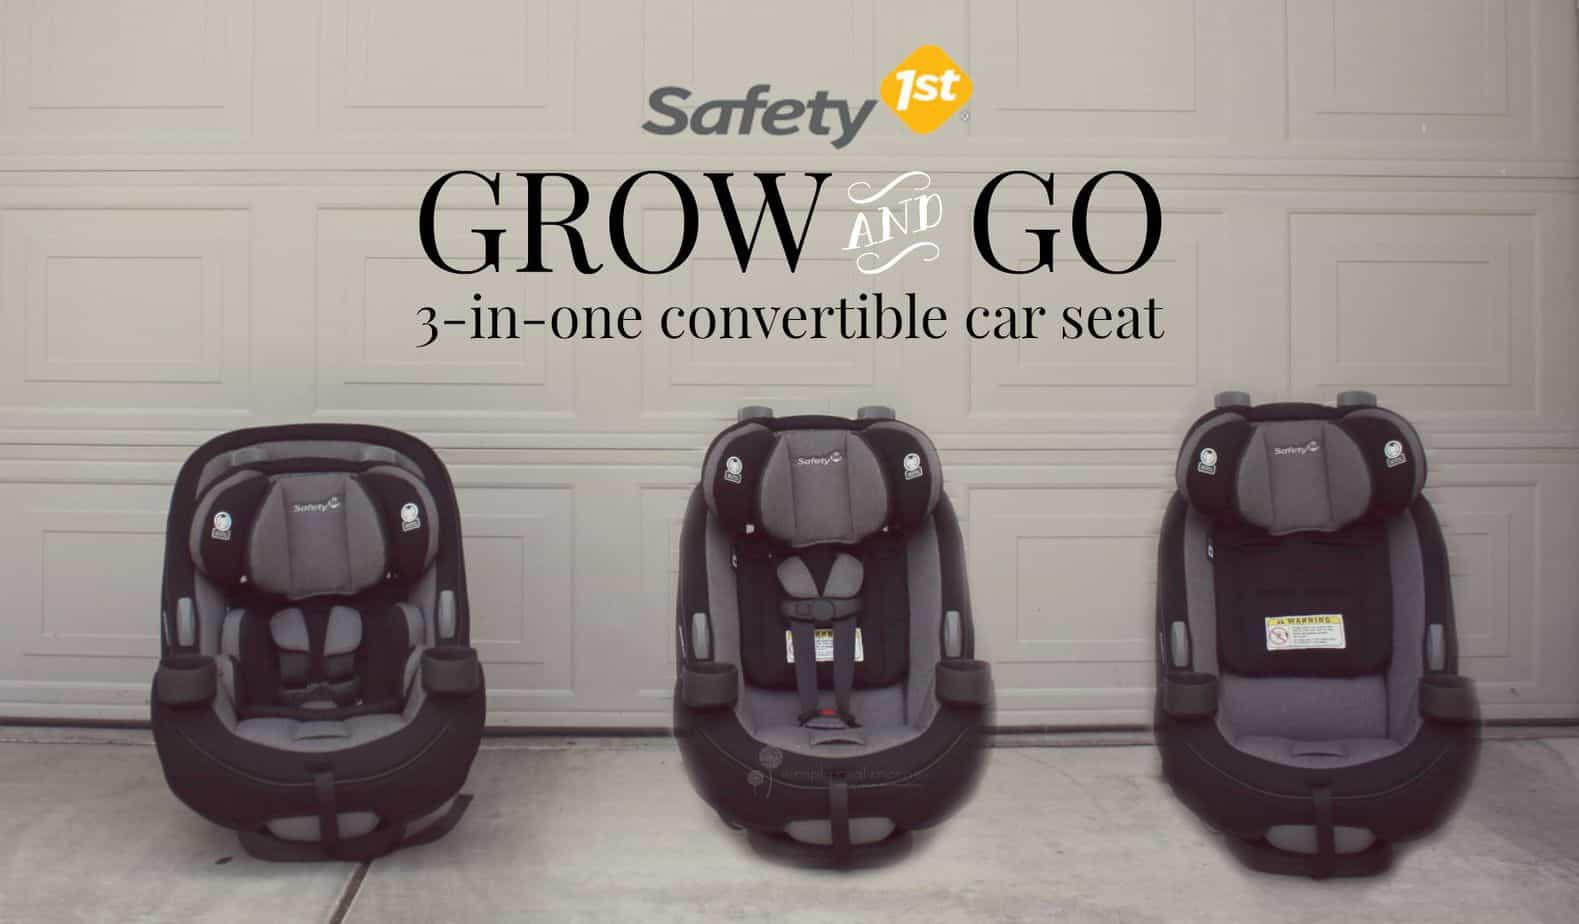 Travel Safety Tips With 1sts New Grow And Go Car Seat 3